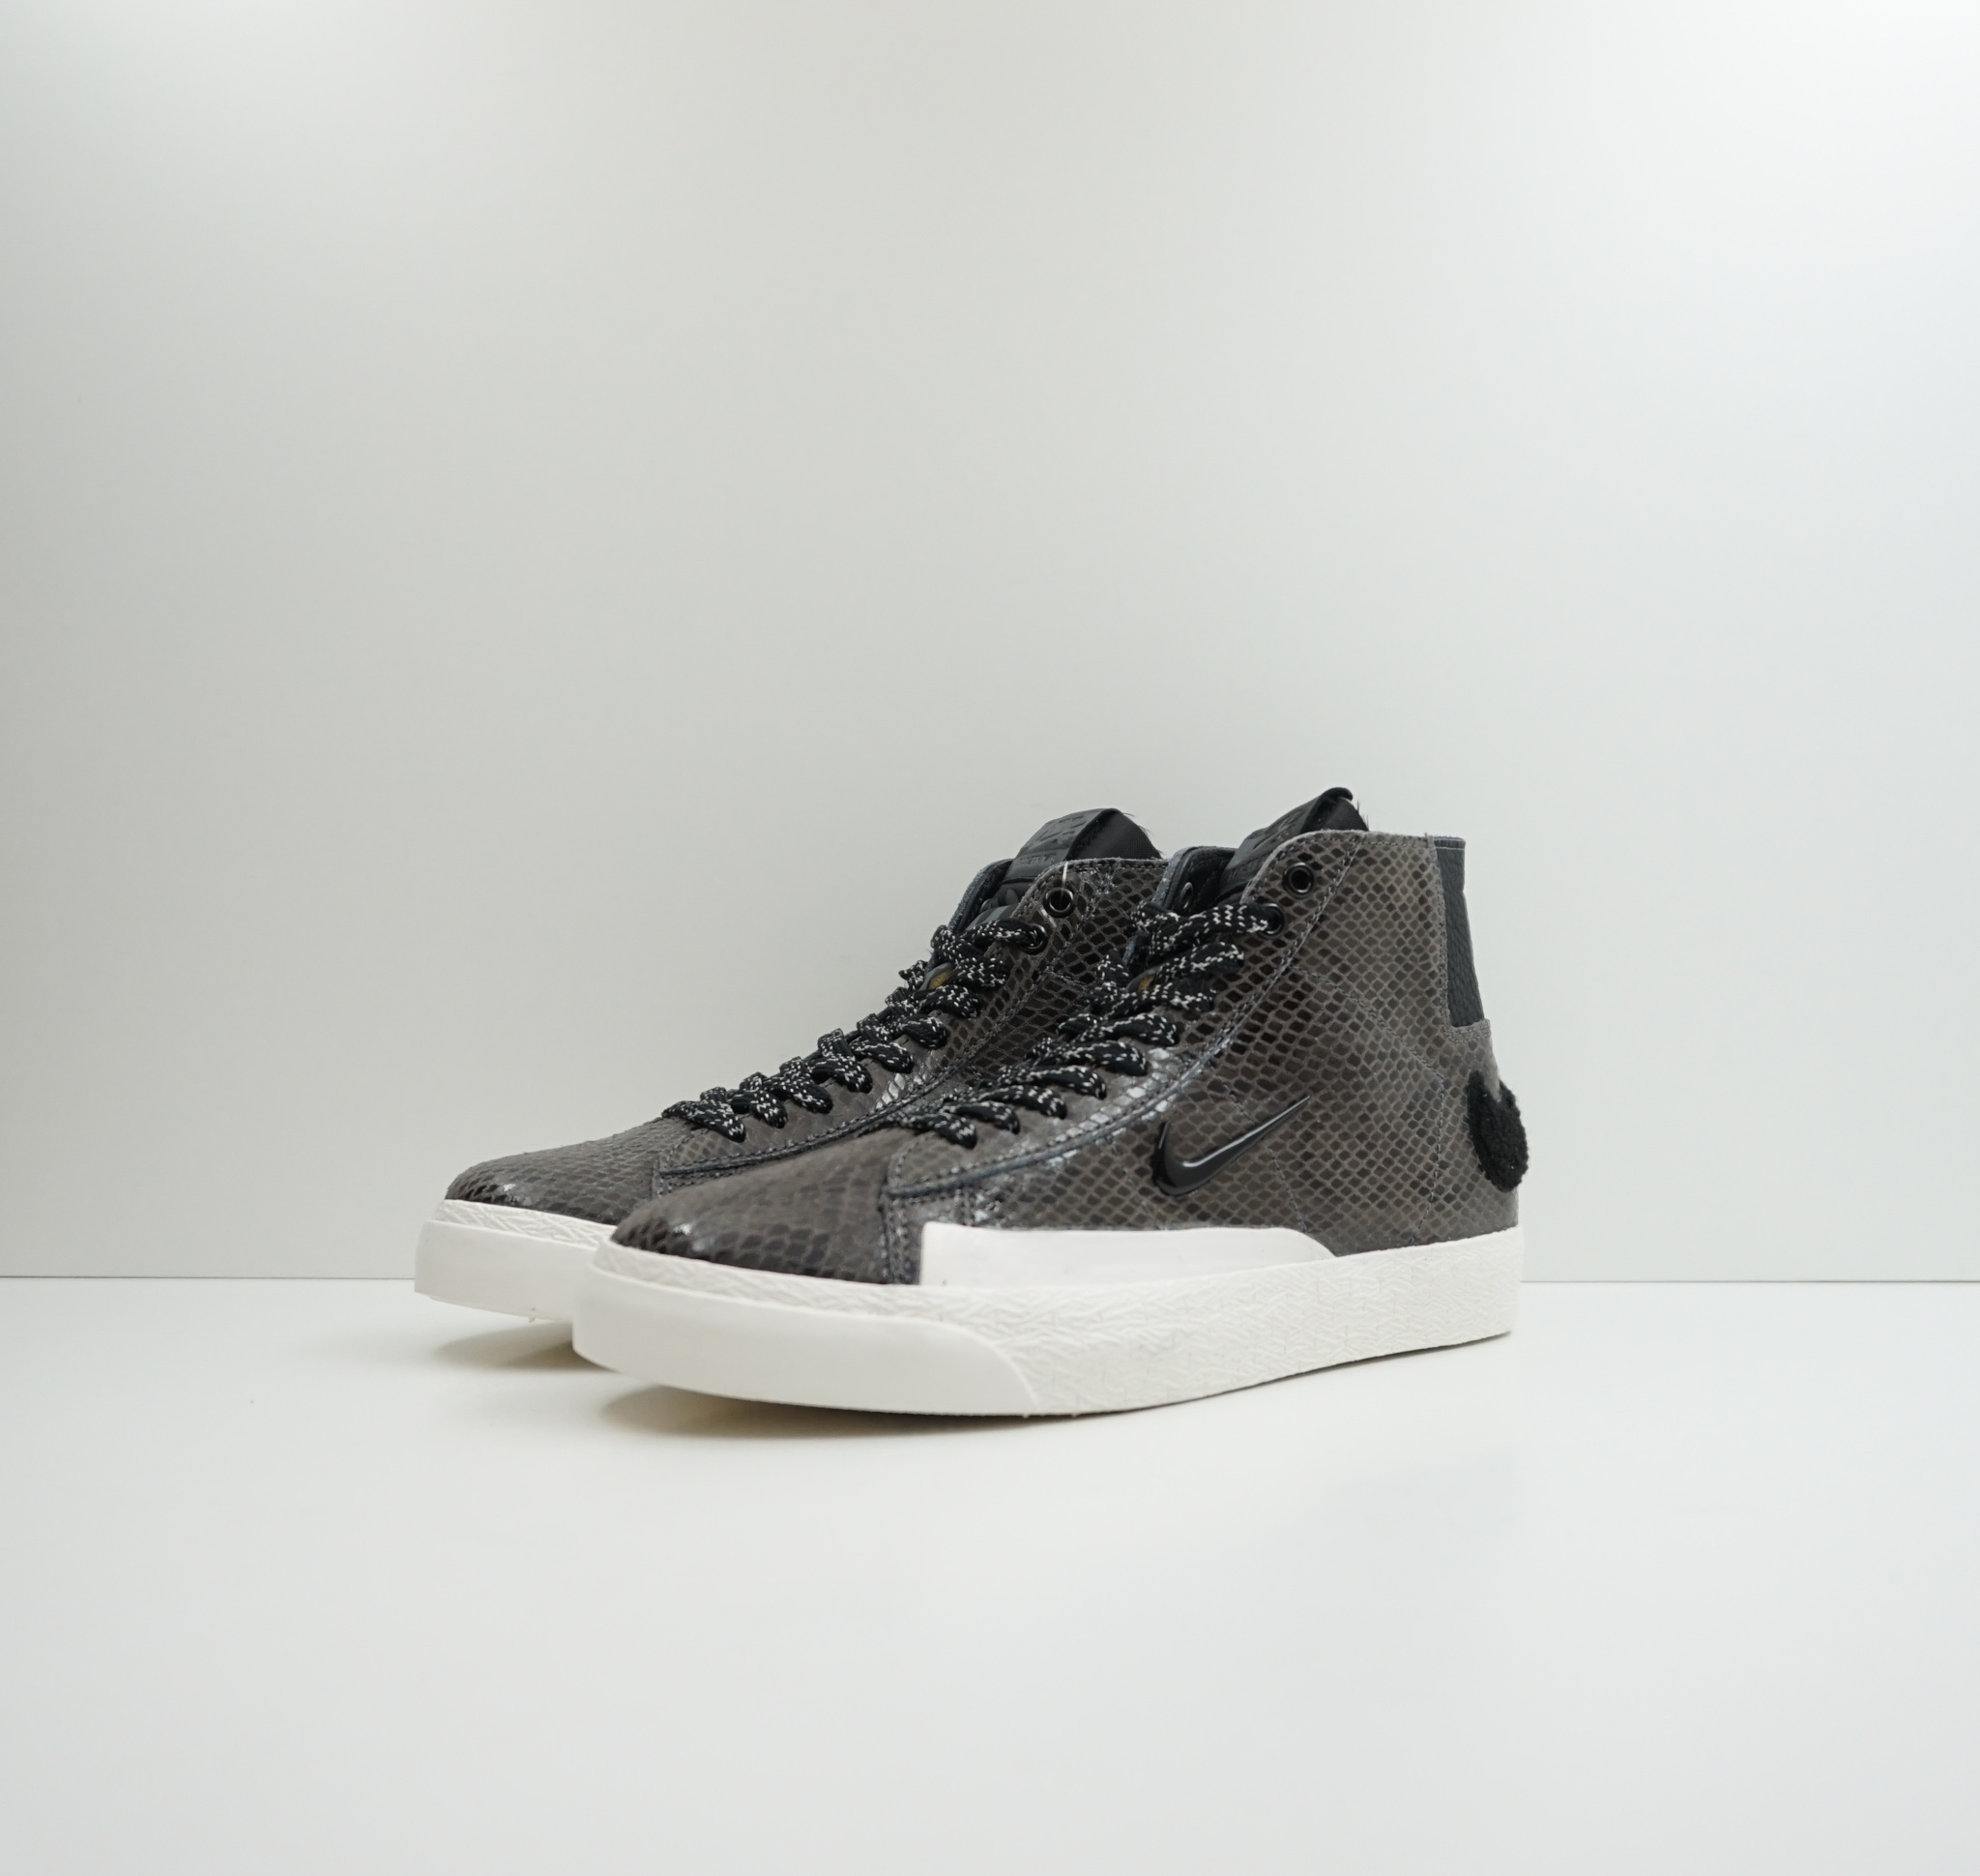 Nike SB Blazer Mid QS Soulland (Friends and Family)